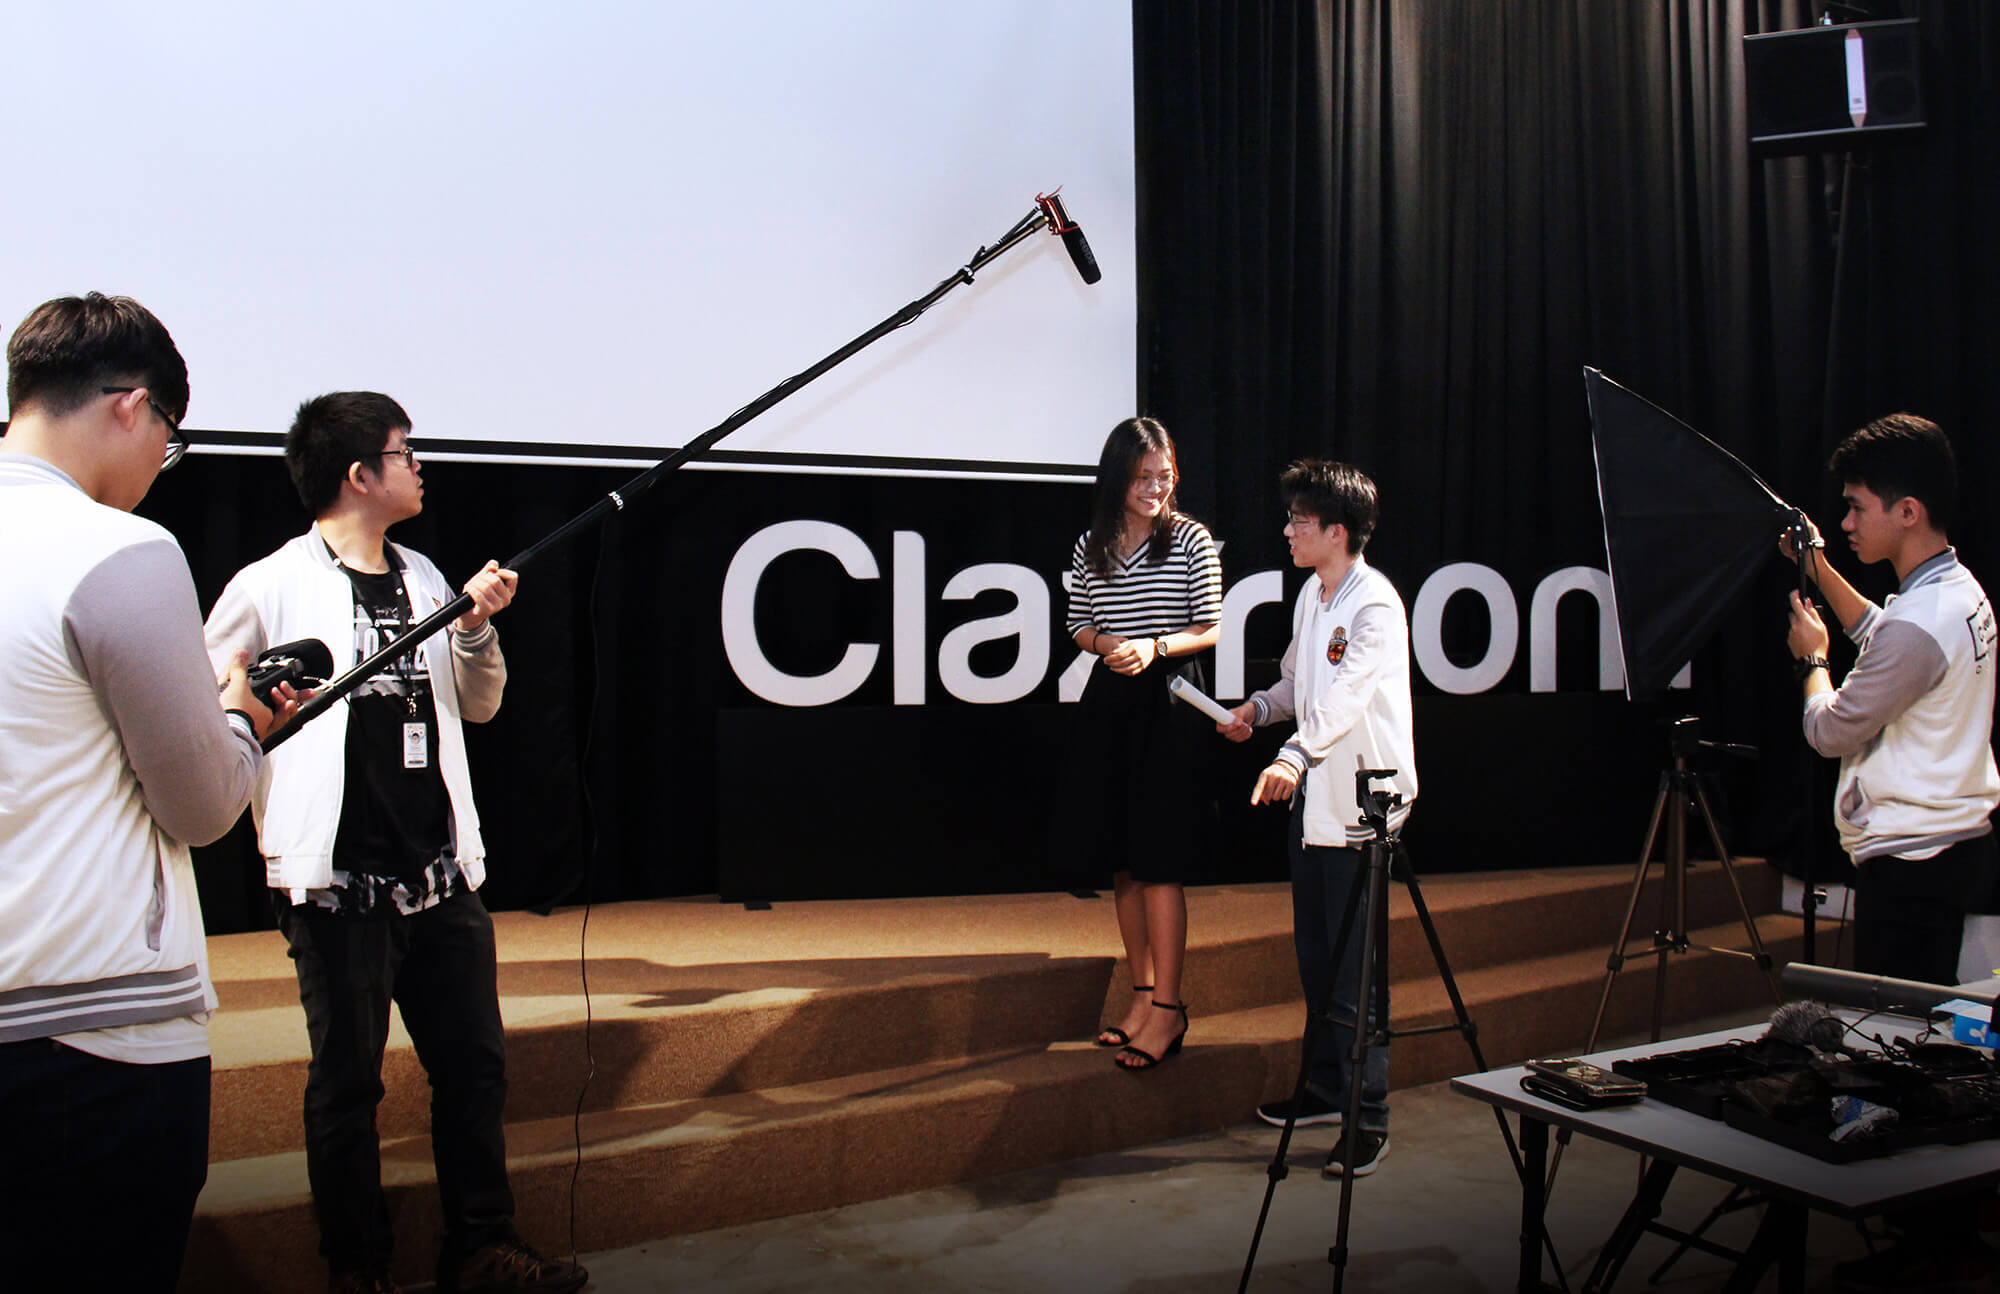 clazroom digital film production shooting scene